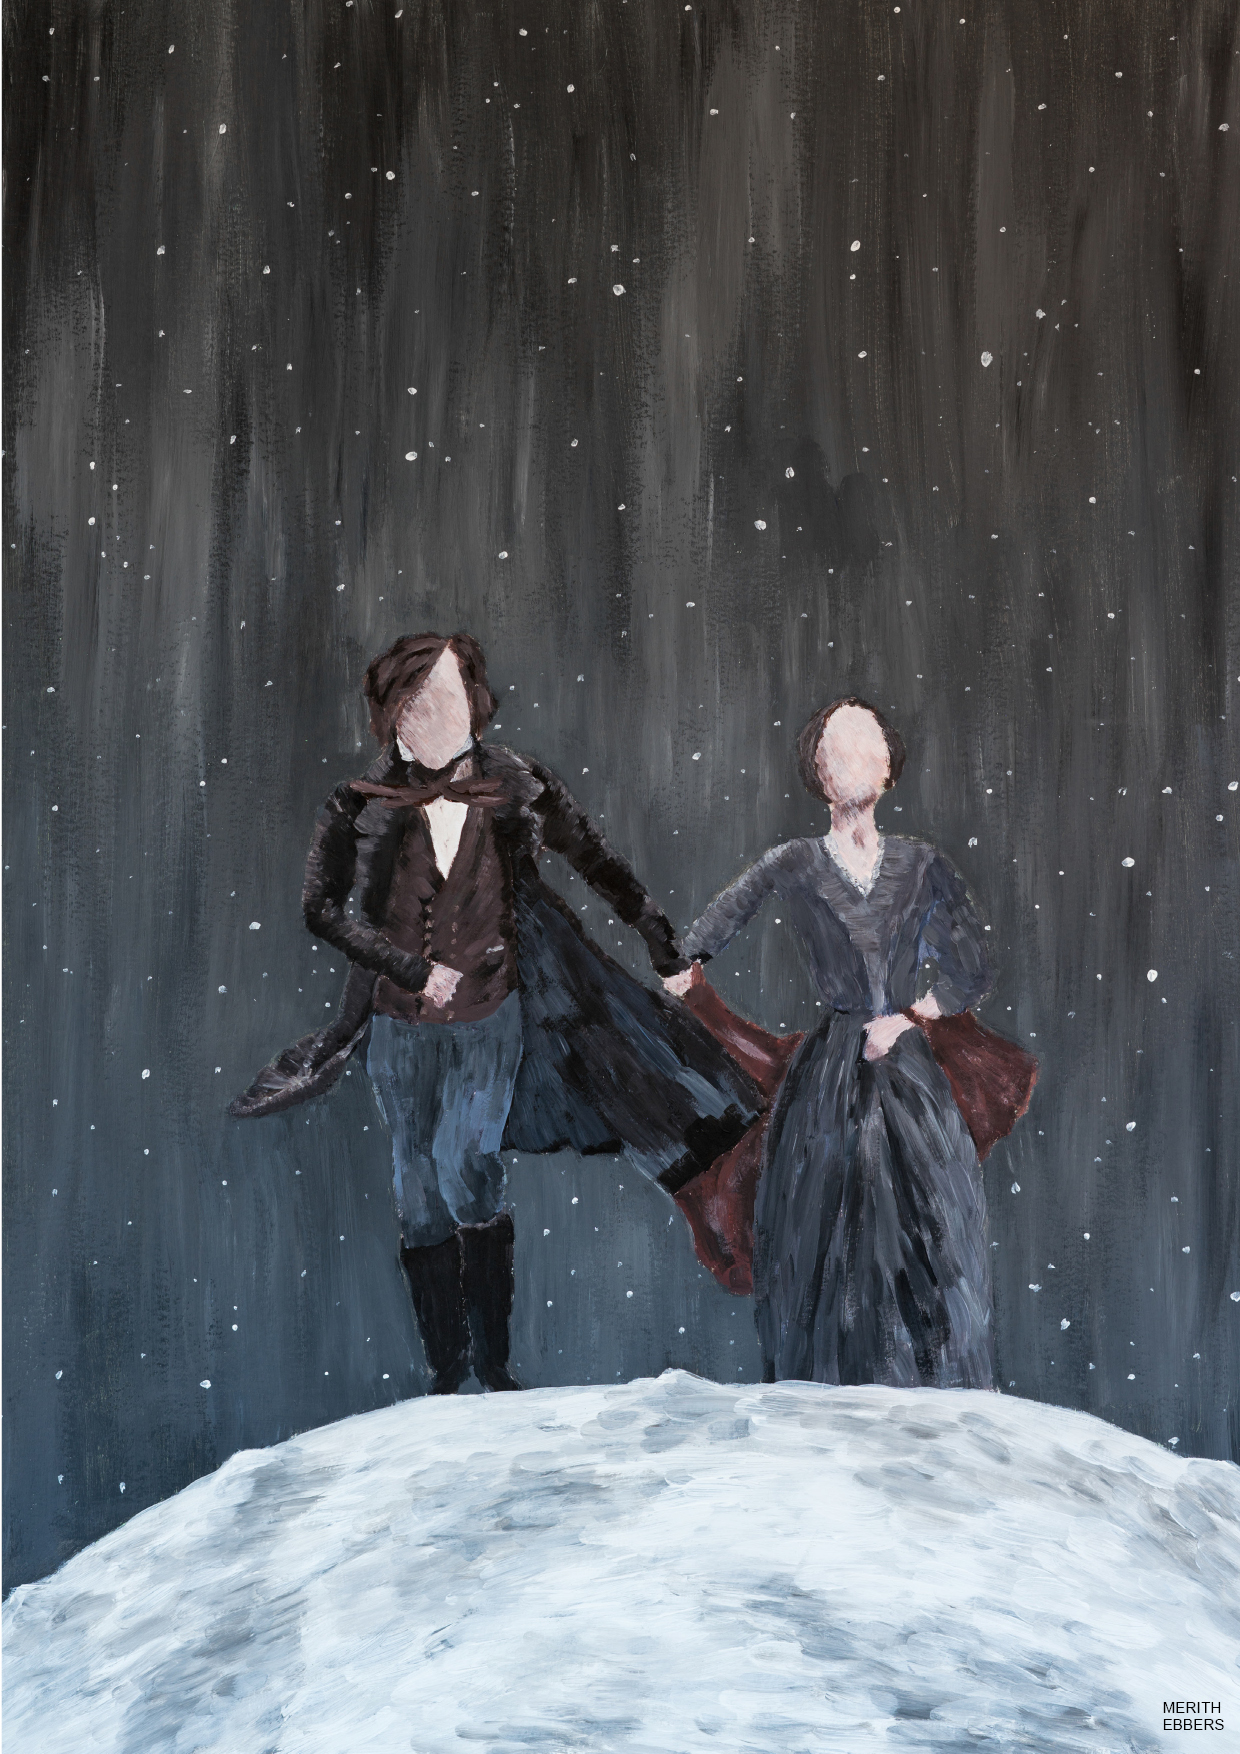 An acrylic painting of Jane Eyre and Mr. Rochester walking hand in hand on the moon